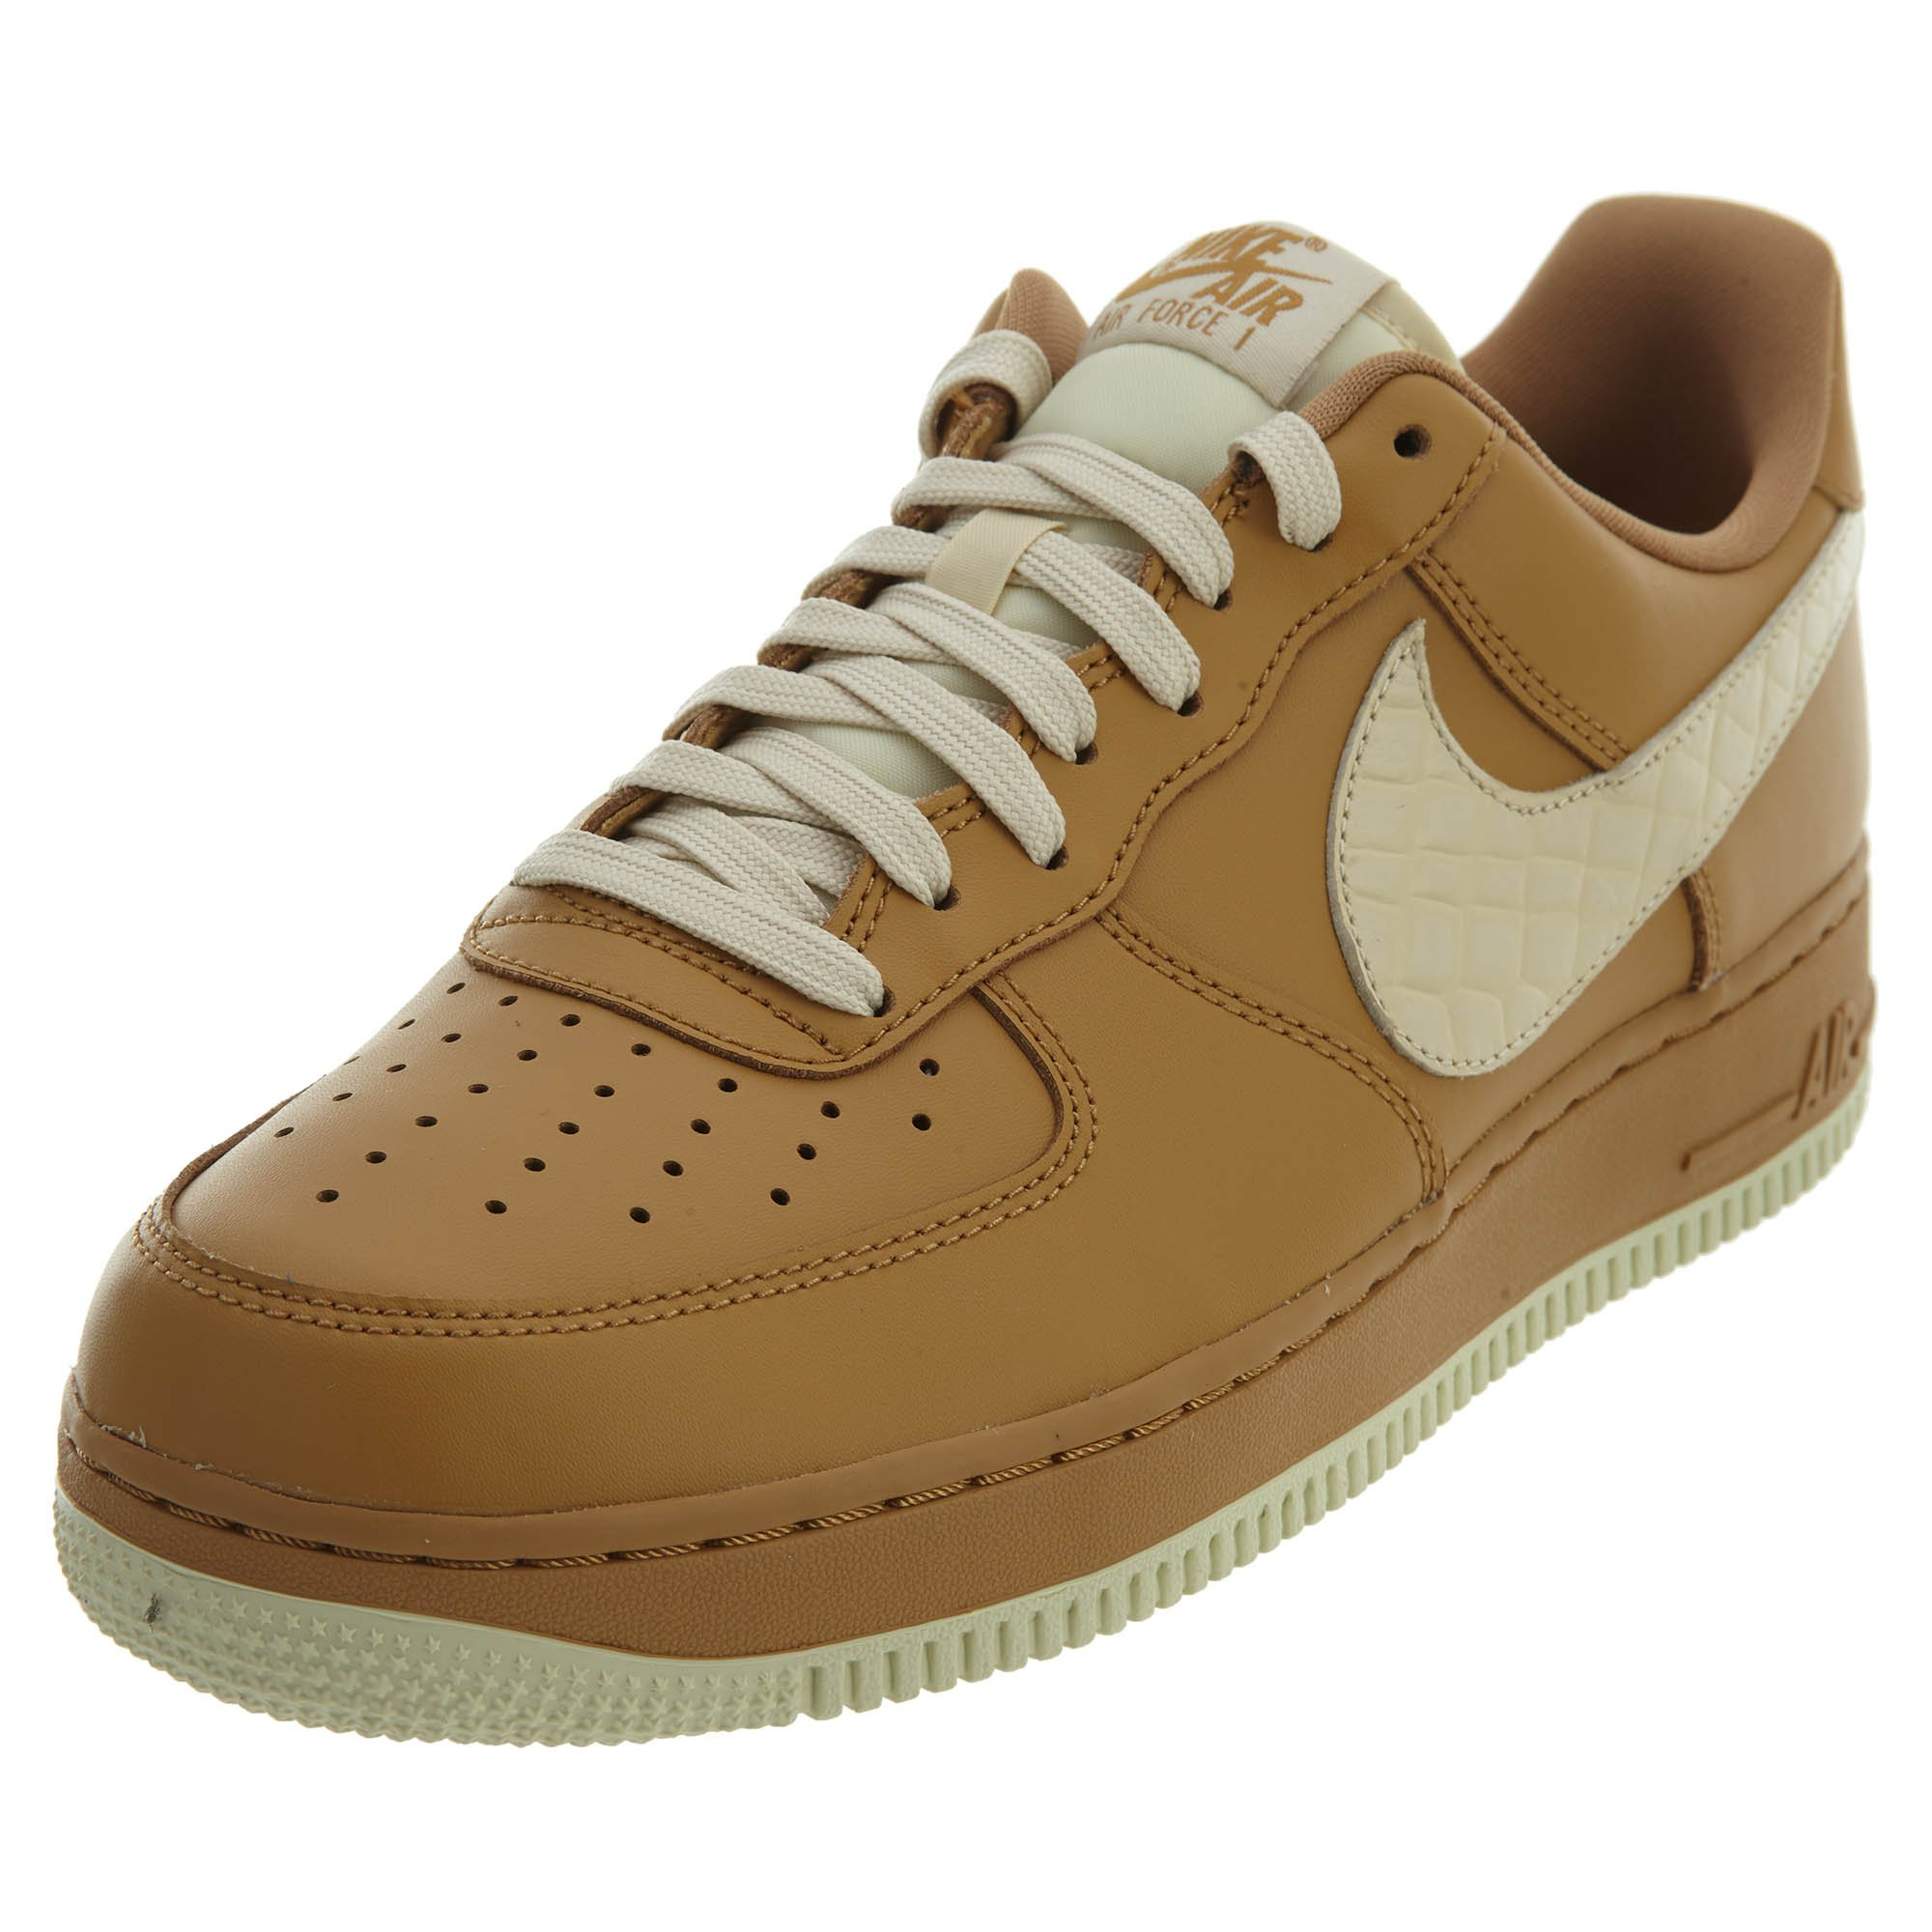 buy online 1b175 a2c17 Galleon - NIKE Air Force 1  07 Lv8 Mens Style  823511-703 Size  9.5